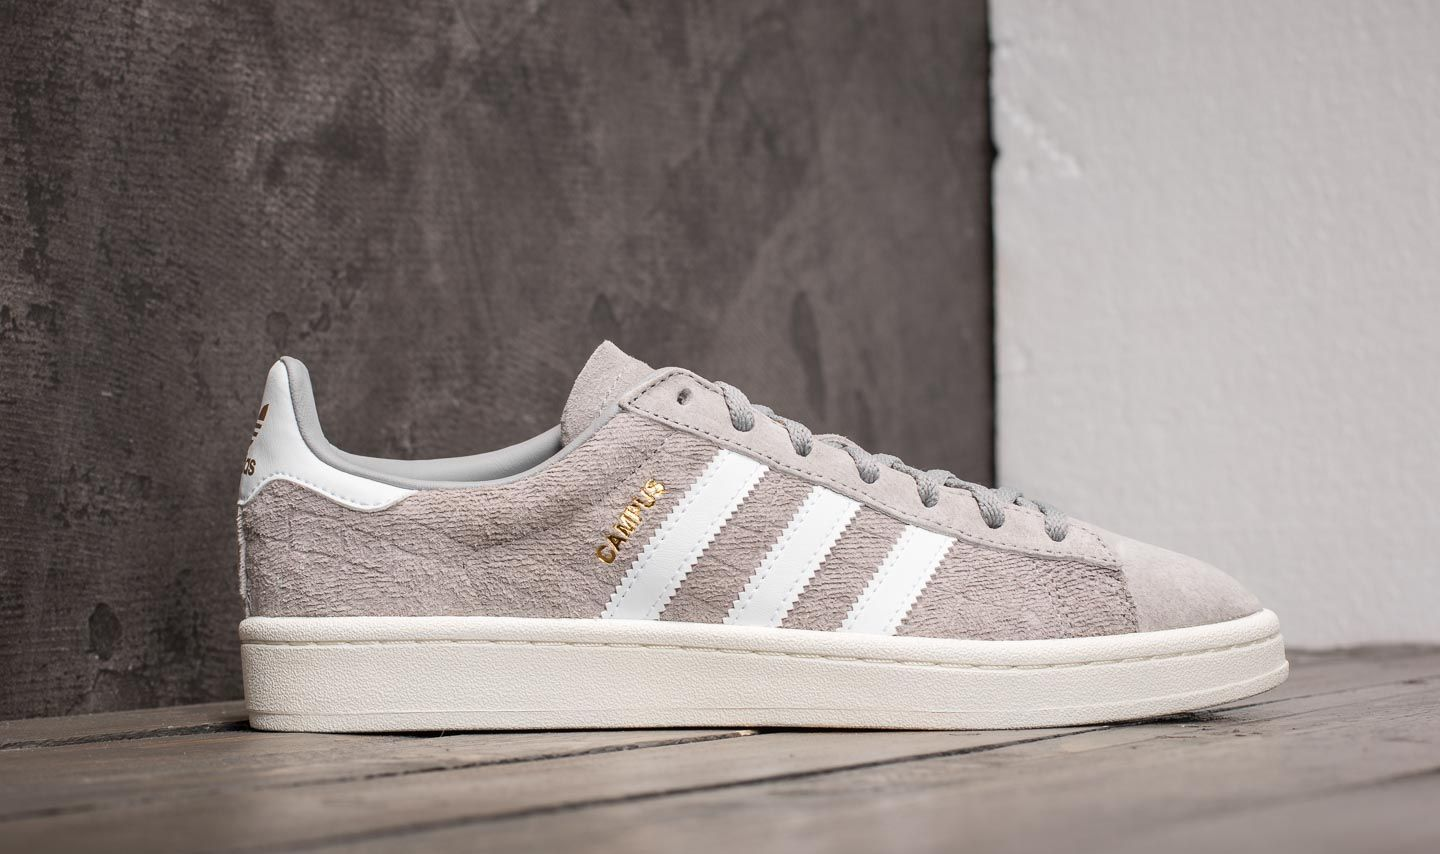 discount 580b2 f9f0b adidas Campus W Mgh Solid Grey Ftw White Gold Metallic at a great price